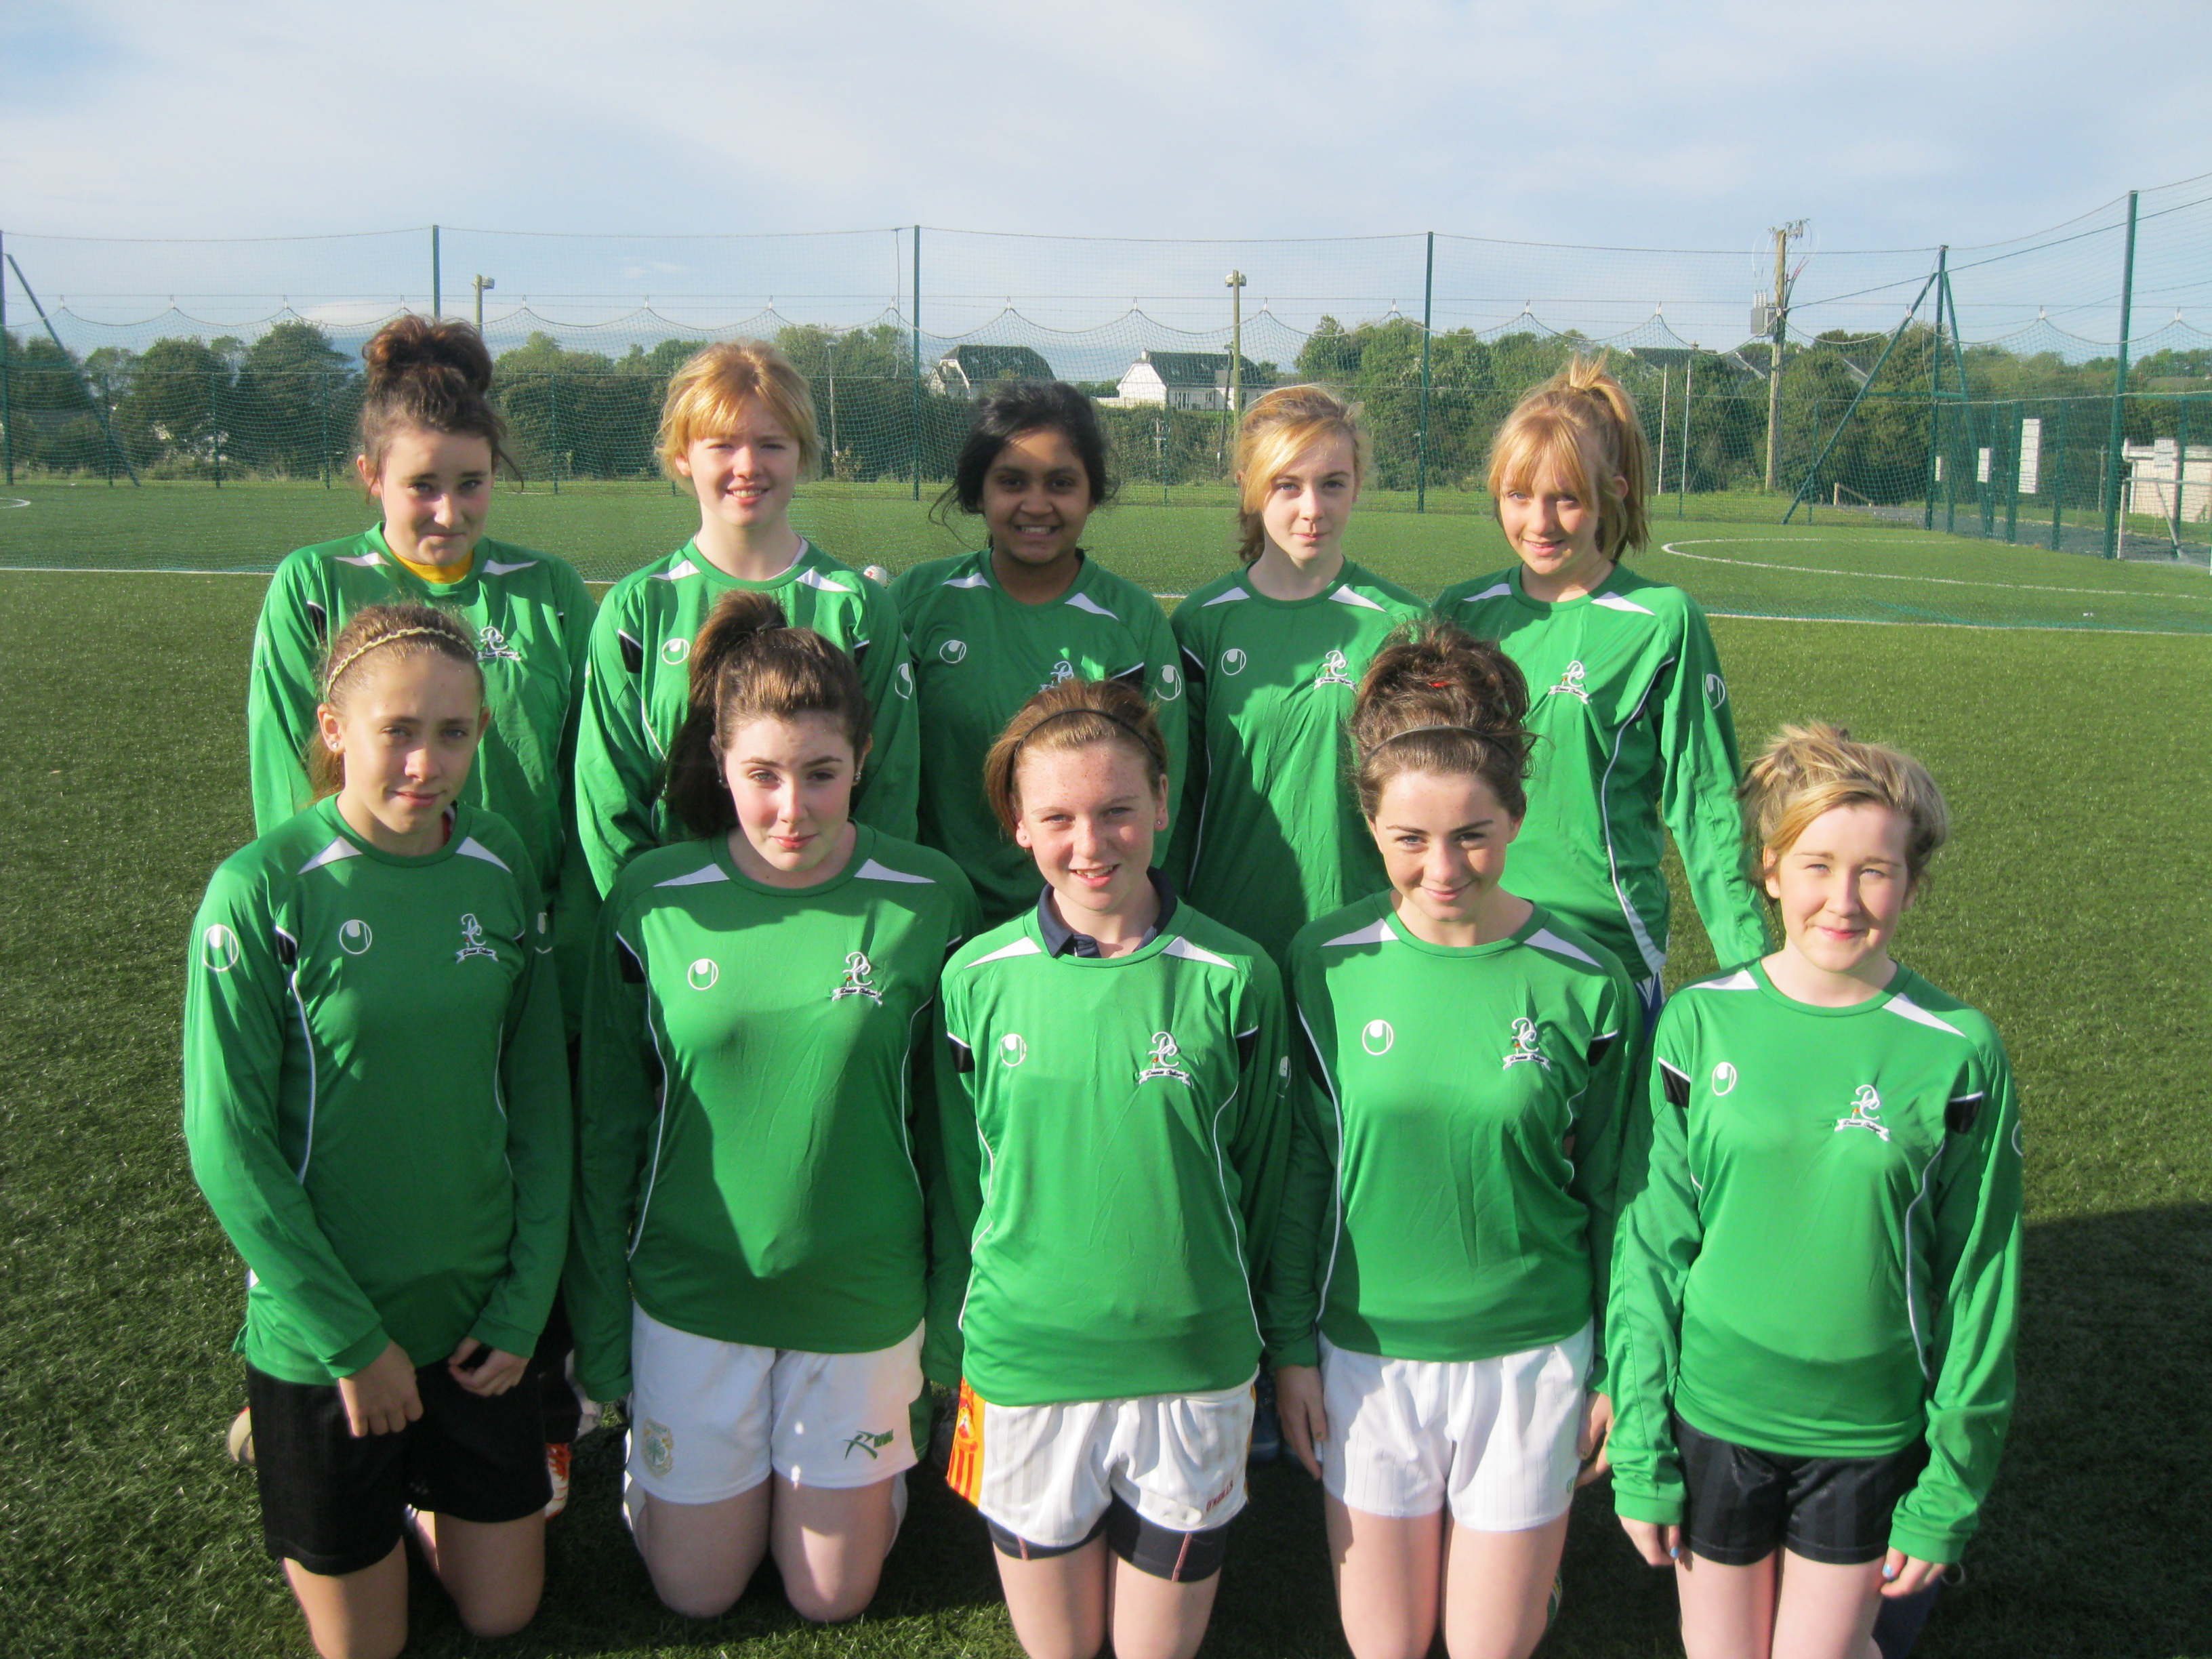 2nd Yr Girls 7-a-side Soccer Team